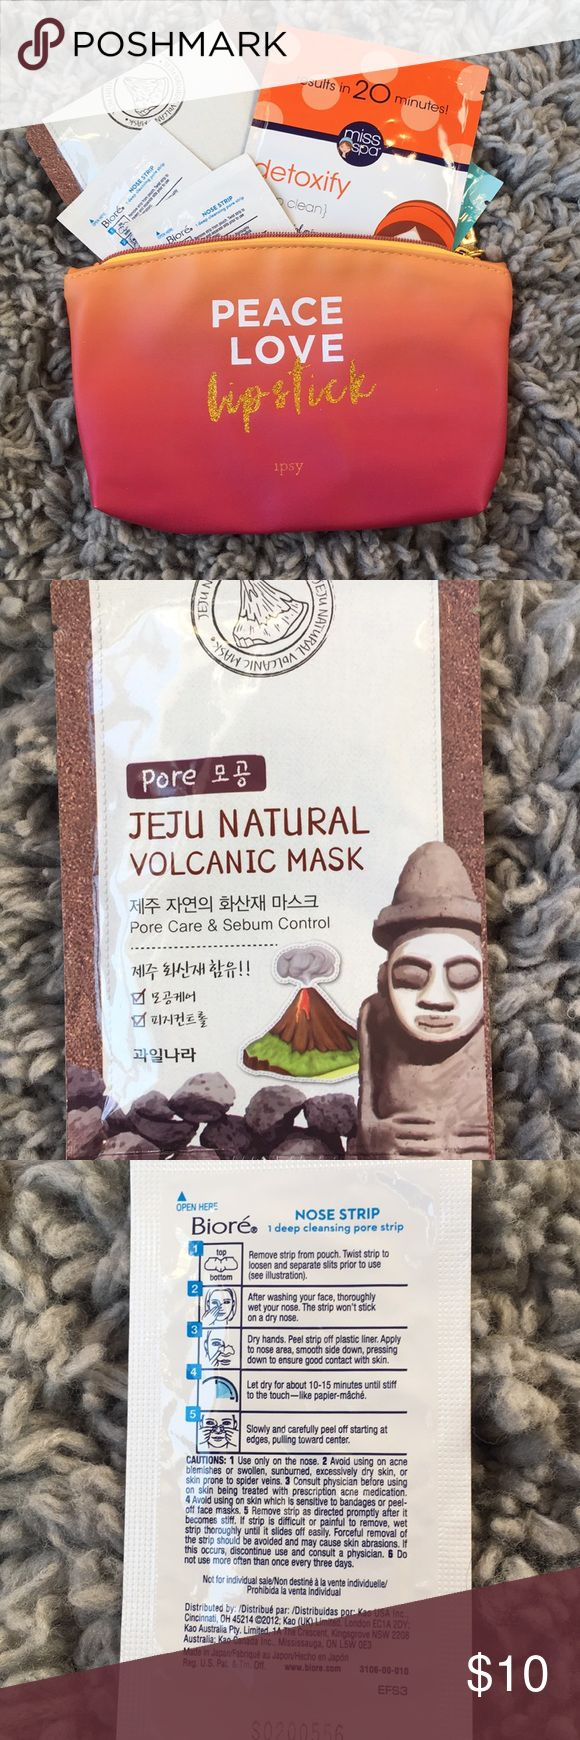 """FACE CARE BEAUTY BAG Comes with 2 Biore nose strips, 2 volcanic masks, and 2 """"miss spa"""" masks.  $25 value. MAKE AN OFFER ipsy Makeup"""